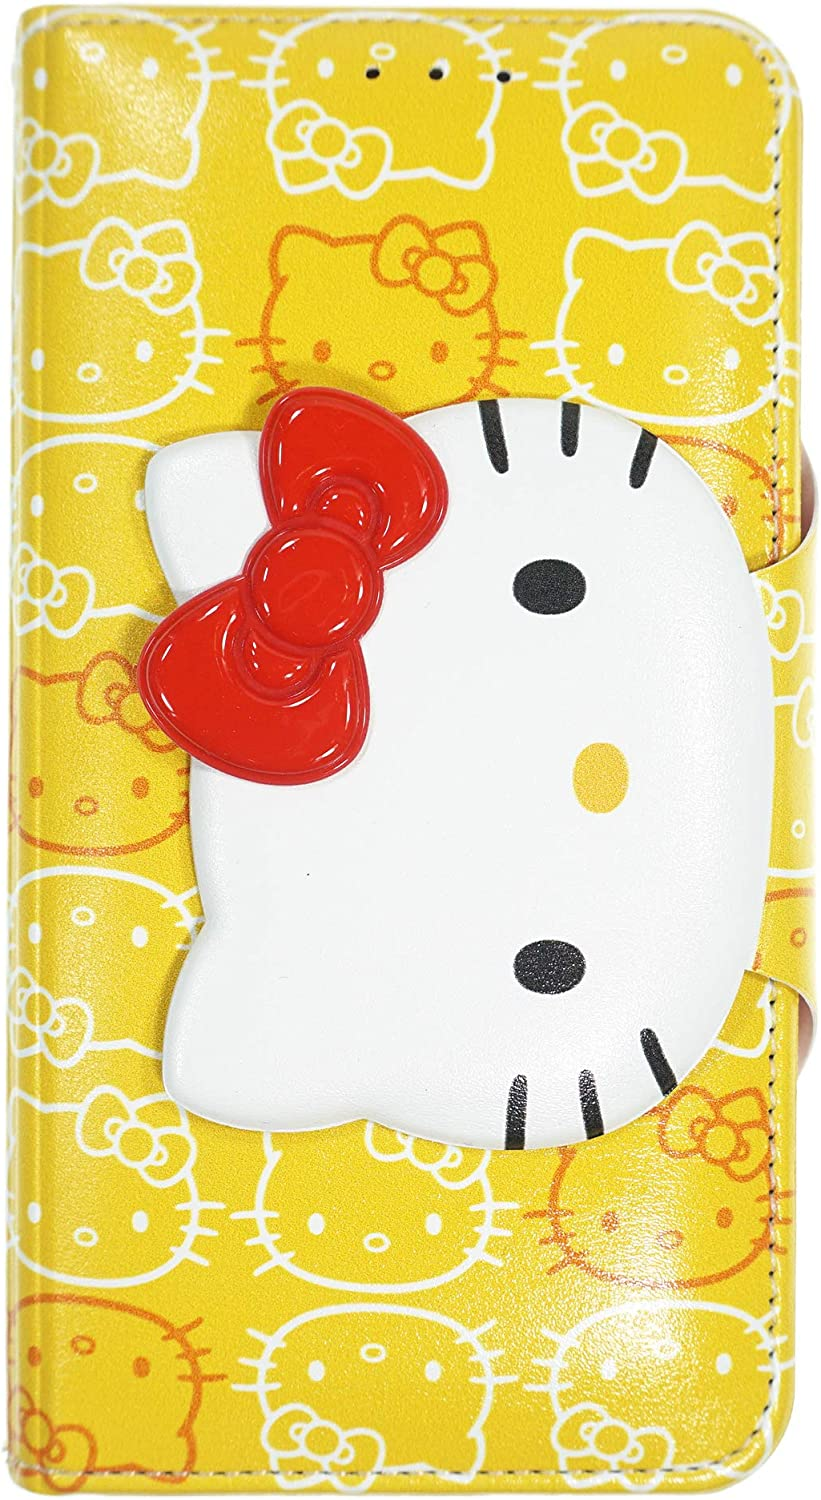 iPhone 11 Pro Max Case Hello Kitty Cute Diary Wallet Flip [ iPhone 11 Pro Max (6.5inch) ] Case - Button Face Yellow